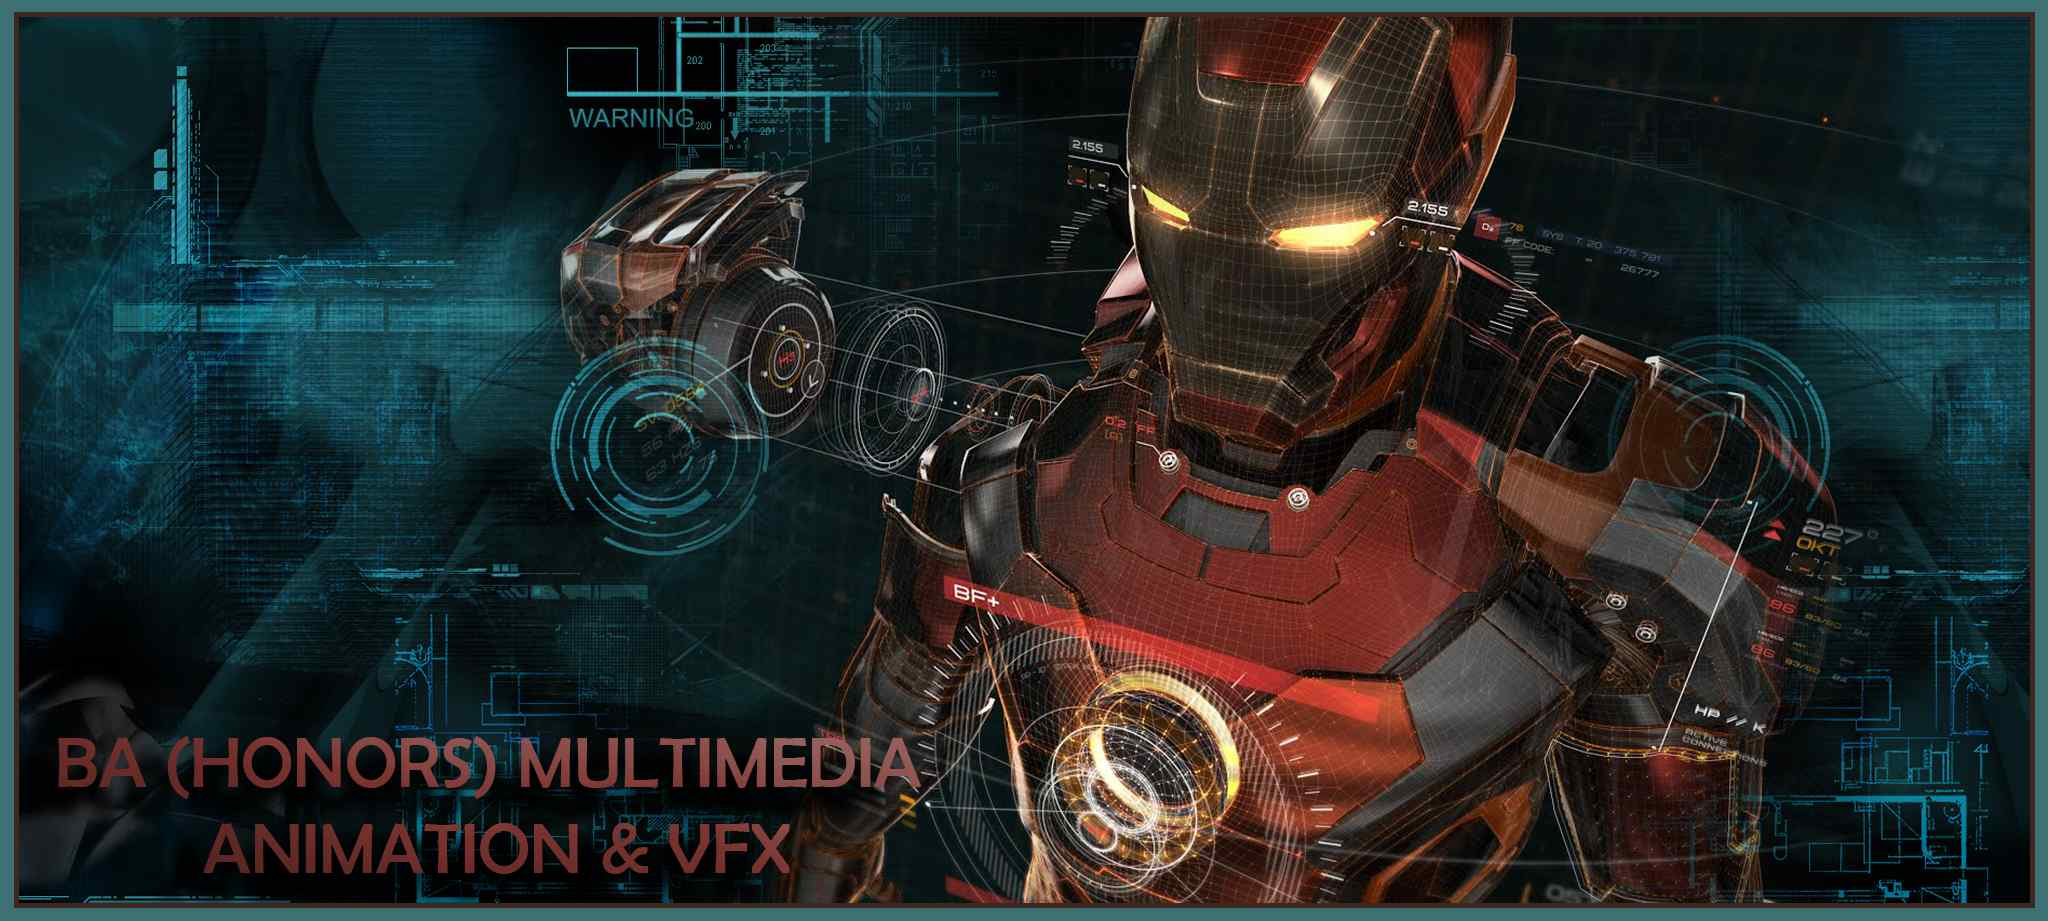 Bachelor Degree in Animation and VFX